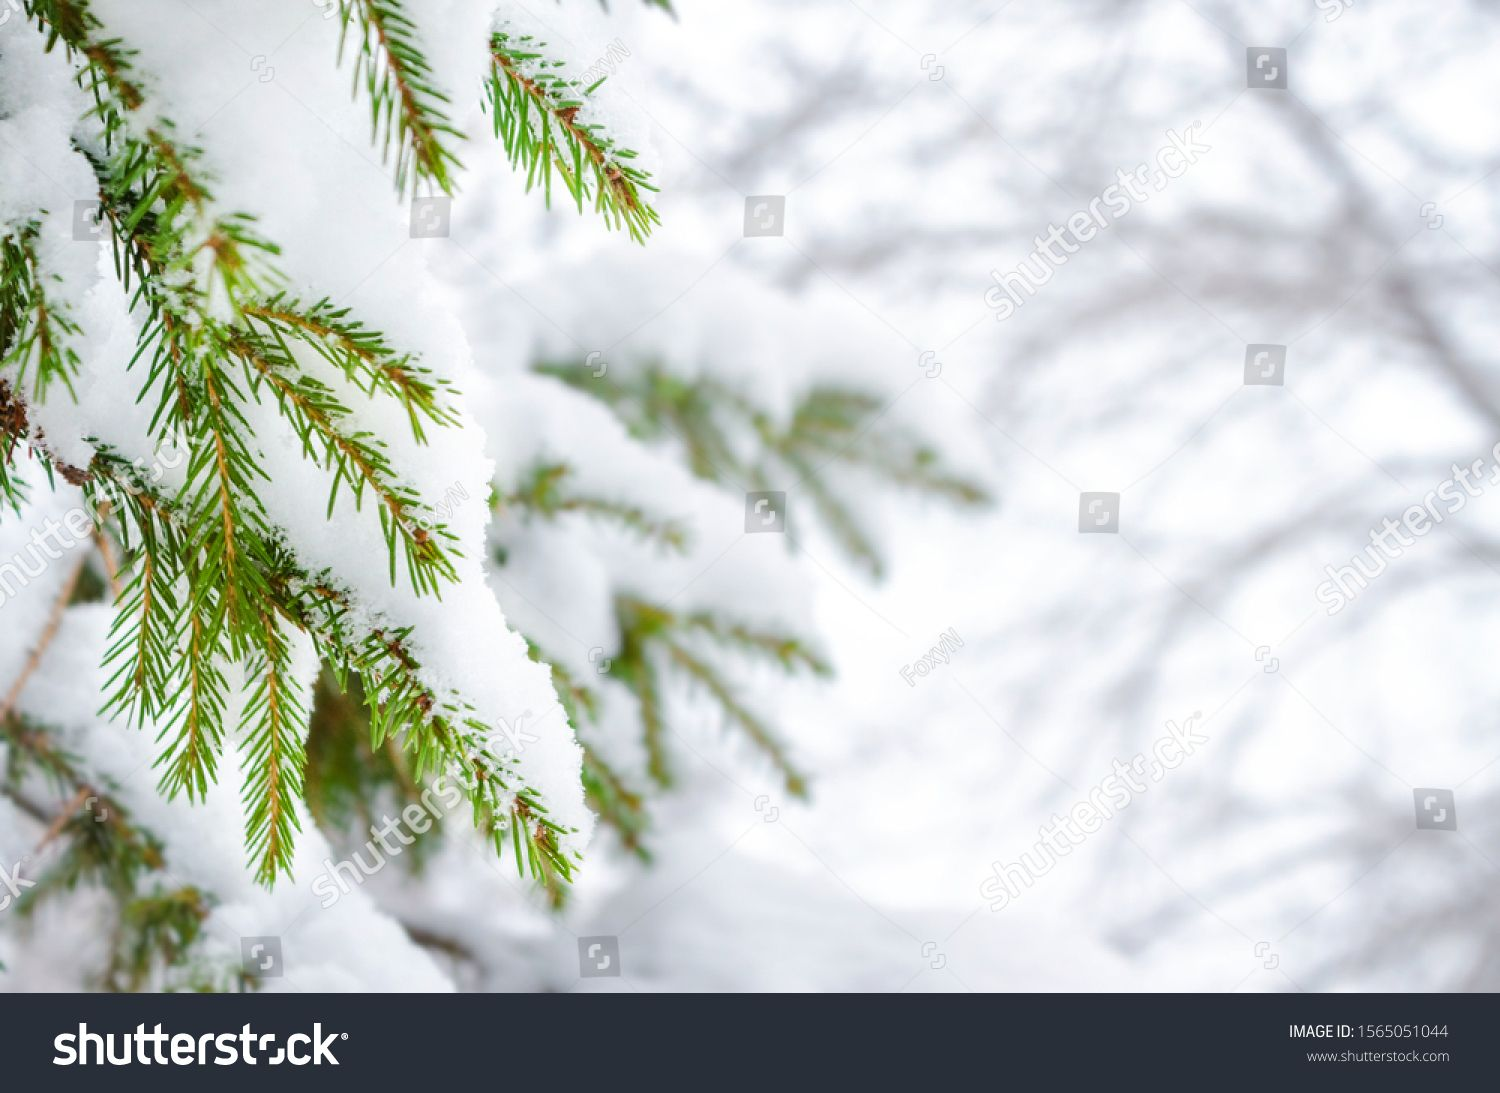 Christmas Tree Branches Under The Snow Snowy Spruce In The Winter Forest Winter Holidays And Walks In The Christmas Tree Branches Tree Branches Winter Forest